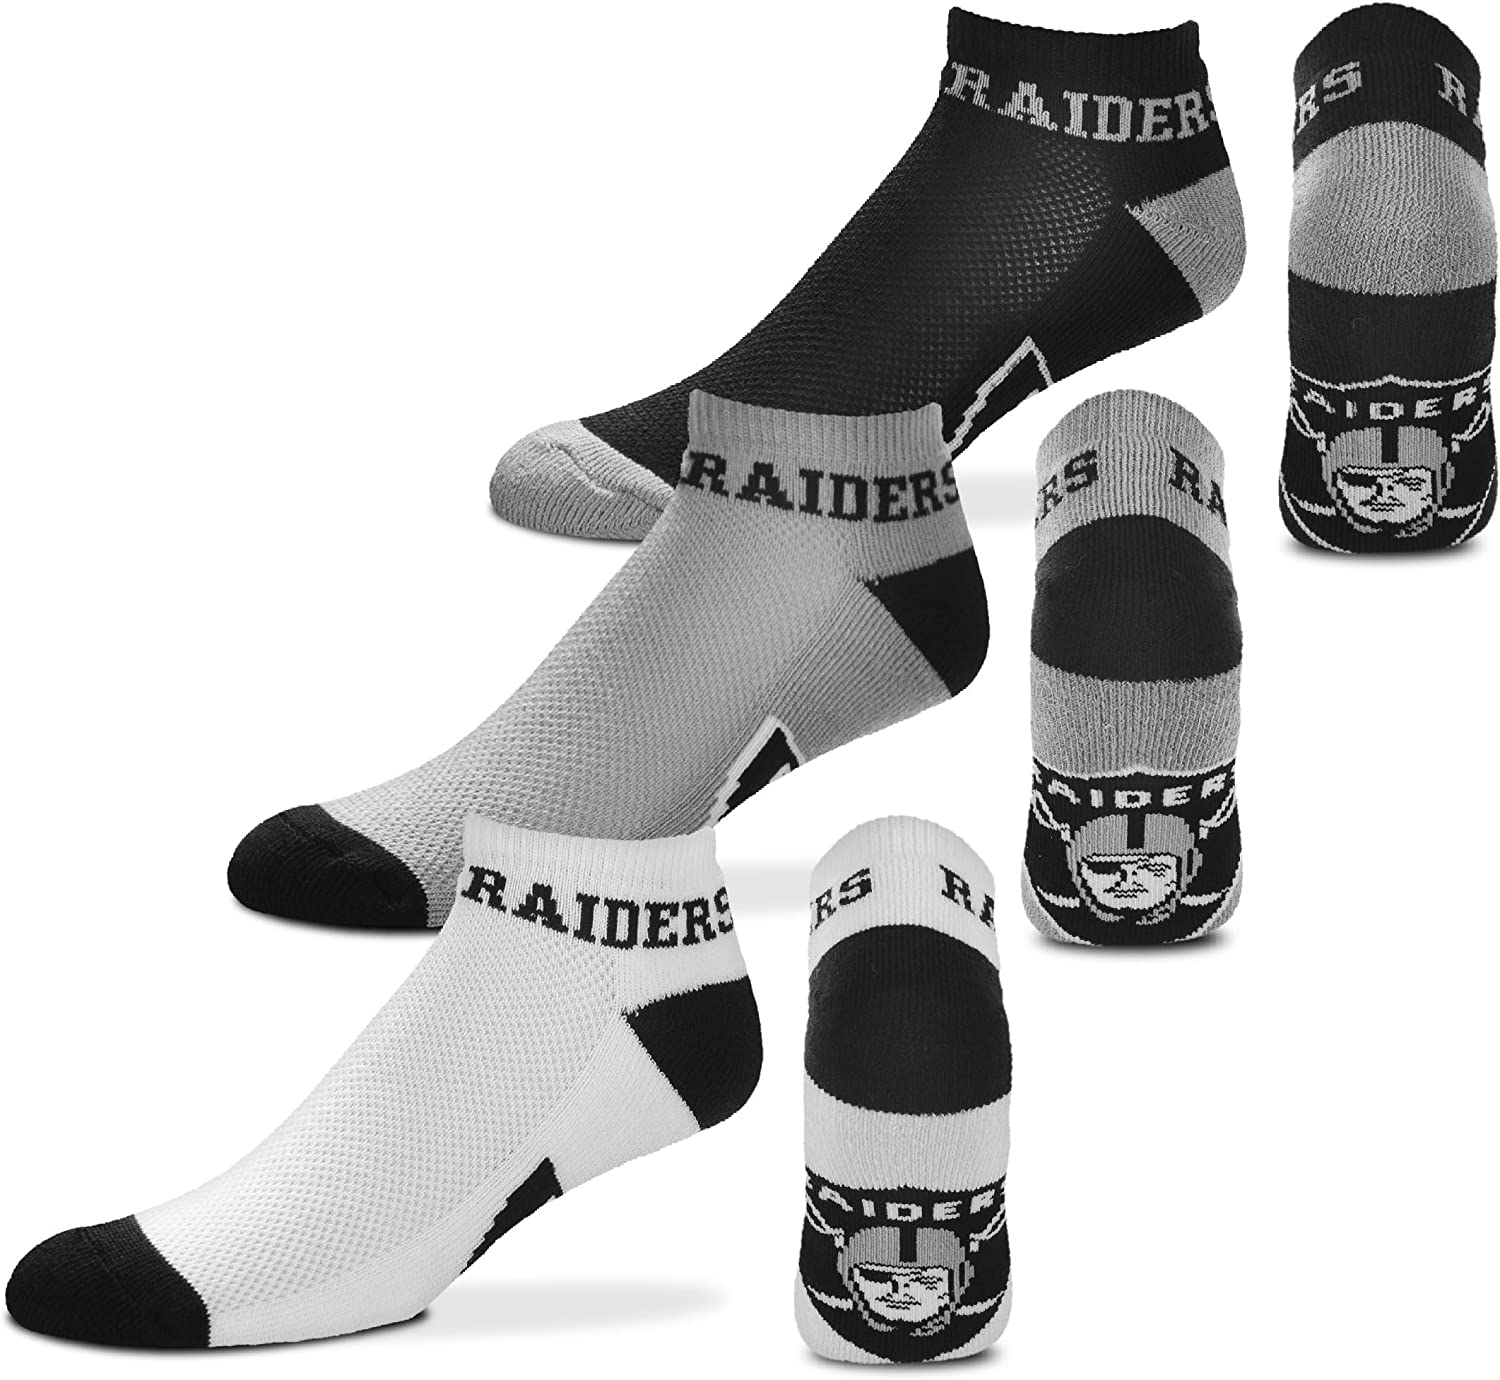 For Bare Feet Oakland Raiders 4 Stripe Youth Size NFL Crew Kids Socks 4-8 YRS